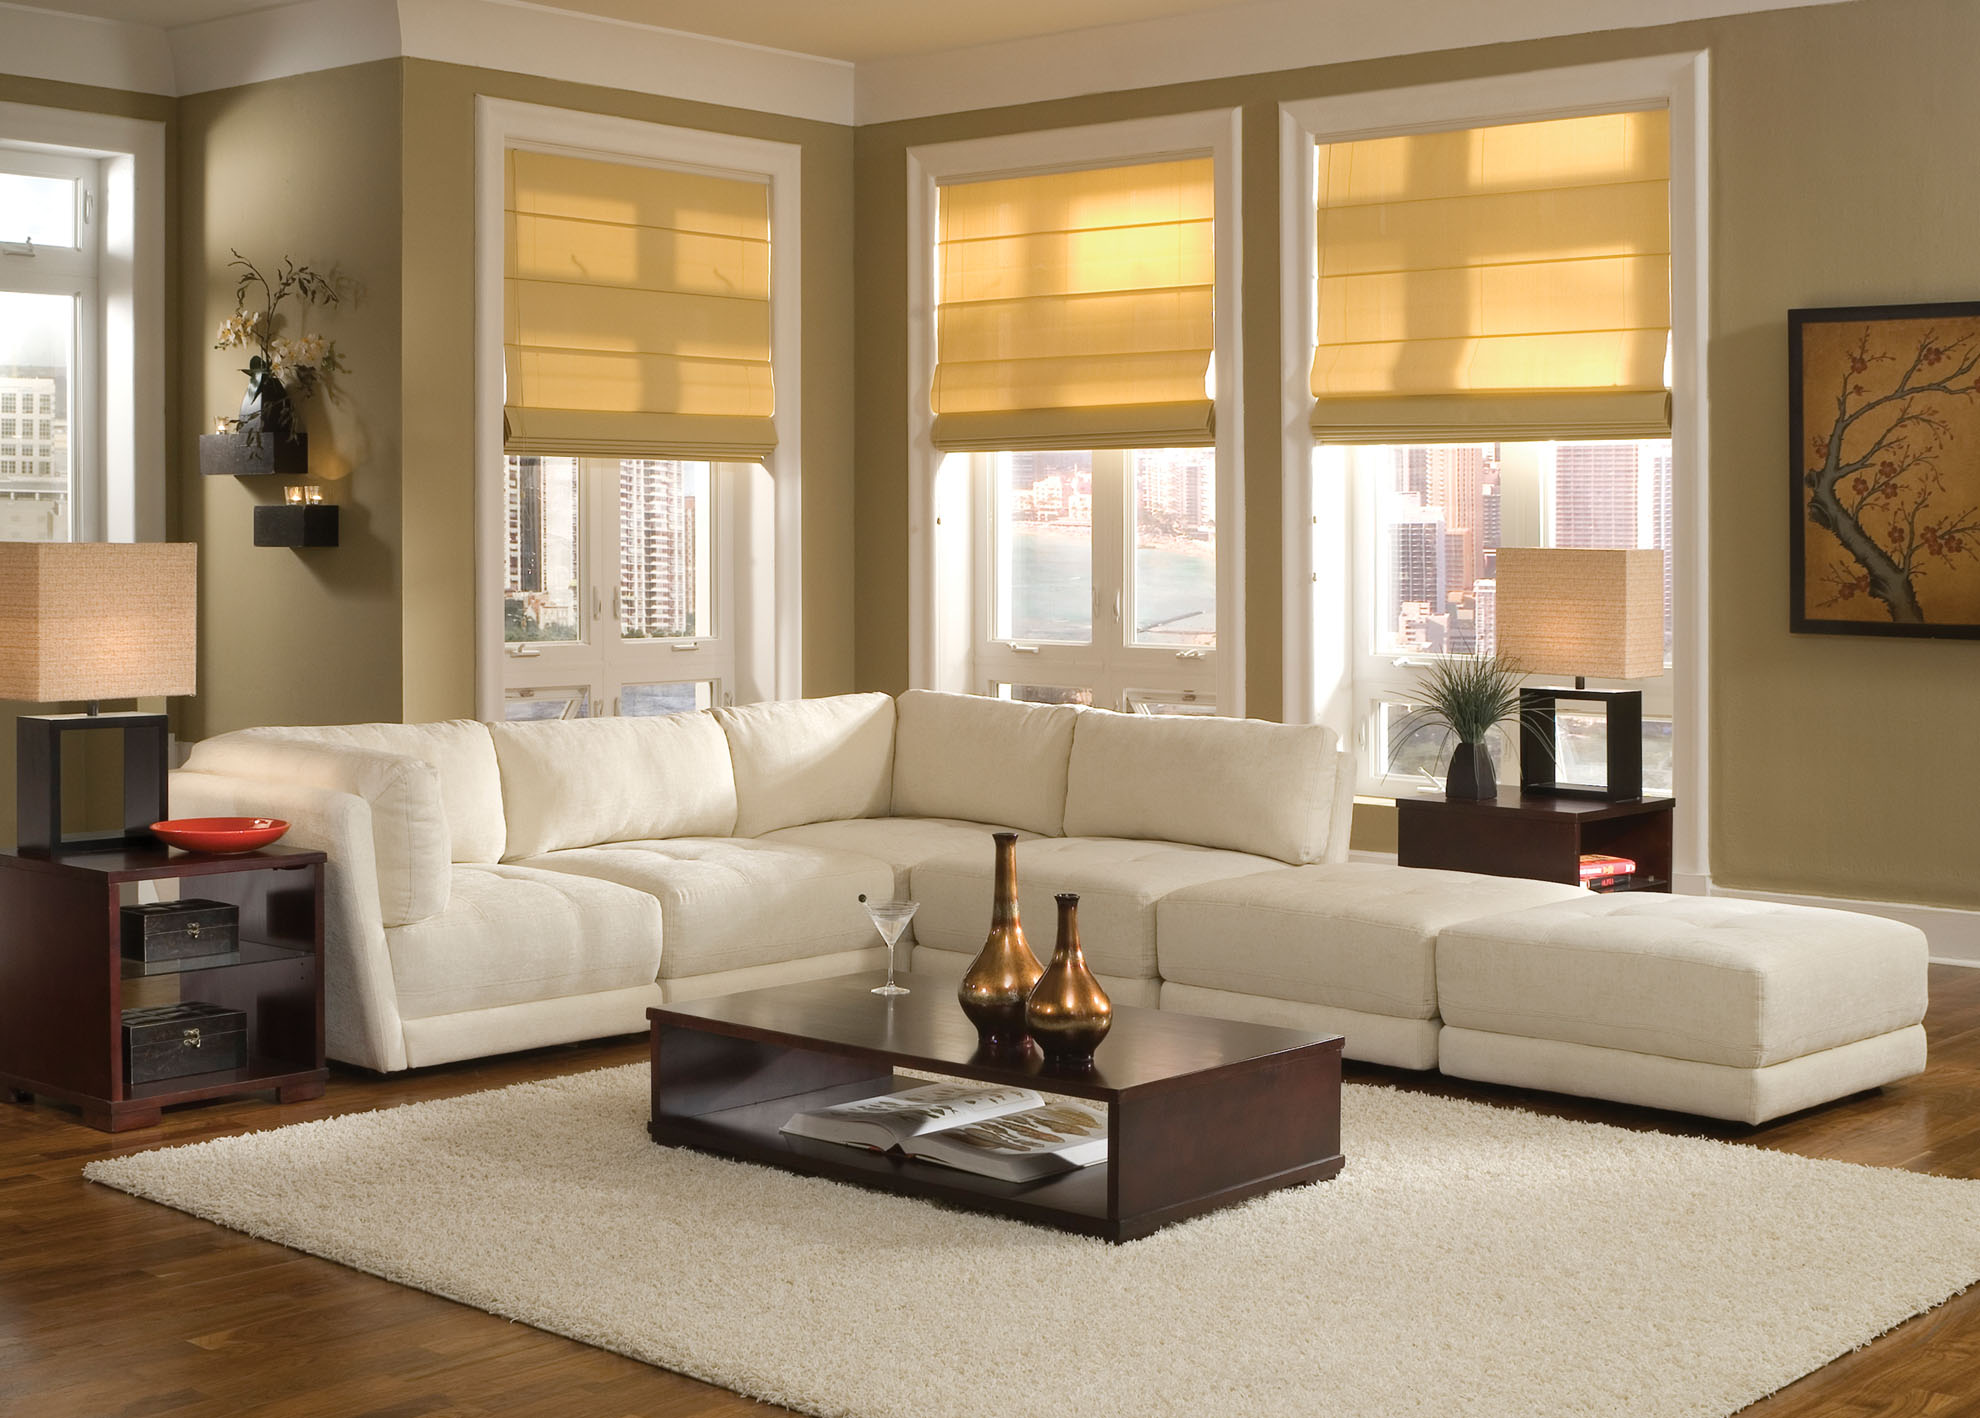 Sofa Design Living Room White Sofa Design Ideas And Pictures For Living Room